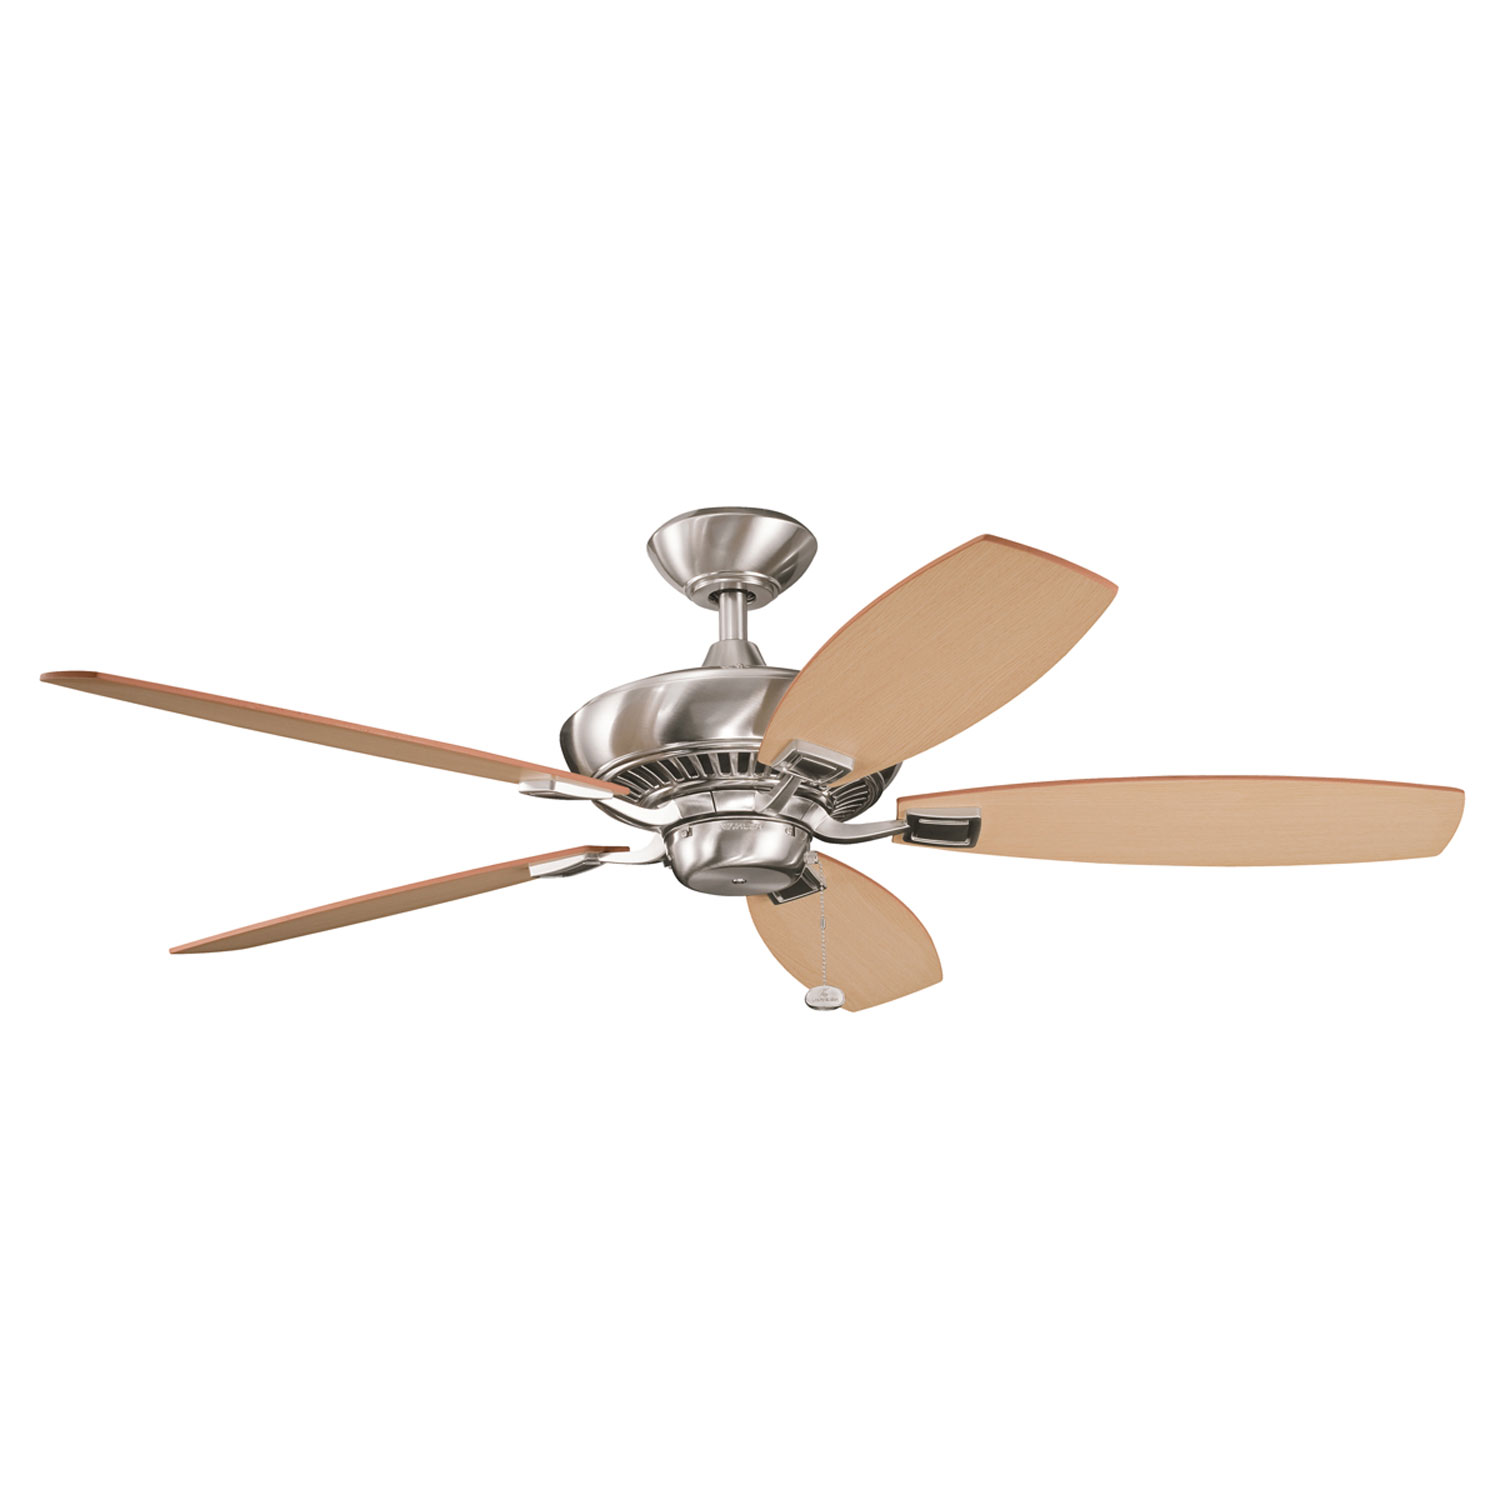 52 inchCeiling Fan from the Canfield collection by Kichler 300117BSS